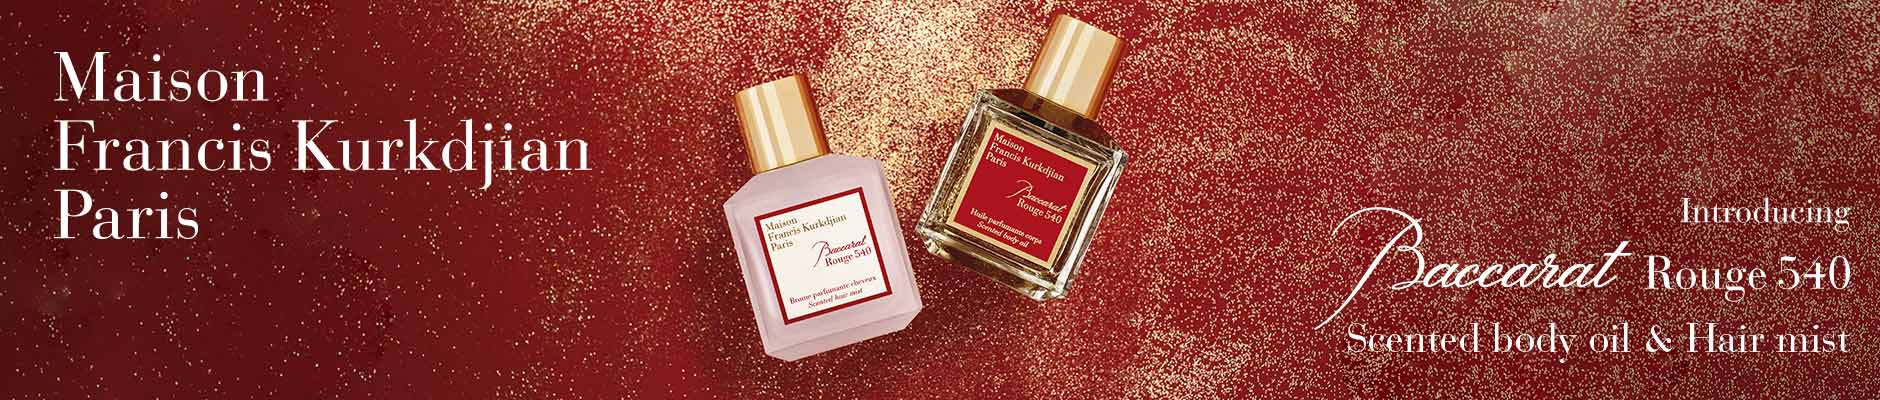 Maison Francis Kurkdjian Paris - Introducing Baccarat Rouge 540, scented body oil & hair mist